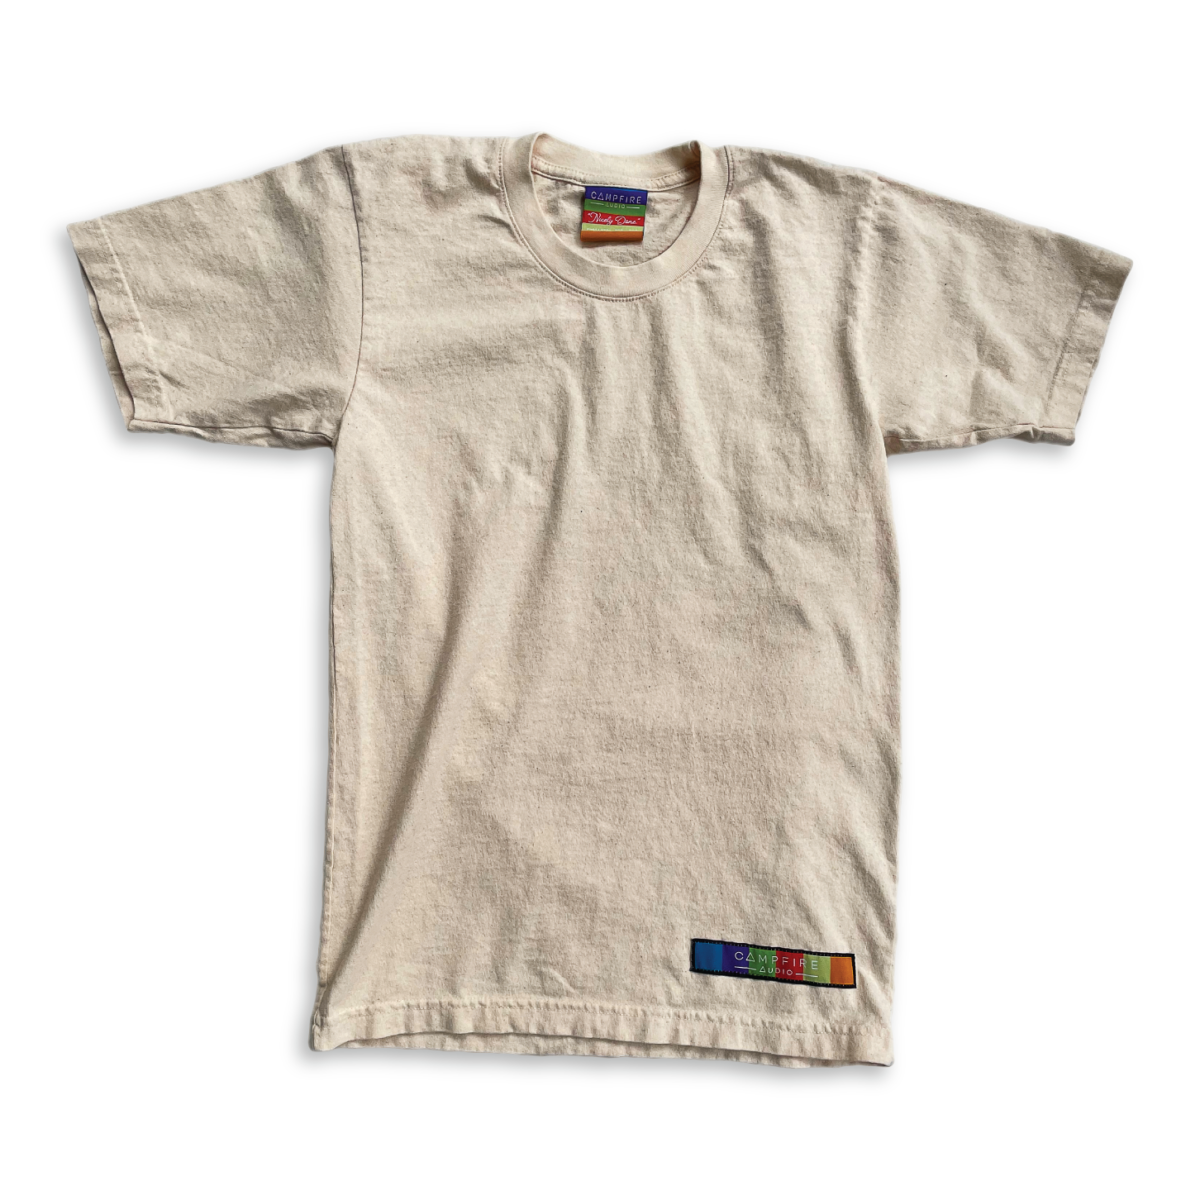 Recycled Cotton Short Sleeve T-Shirt in Natural Cotton with Campfire Audio Color Block Logo Tag